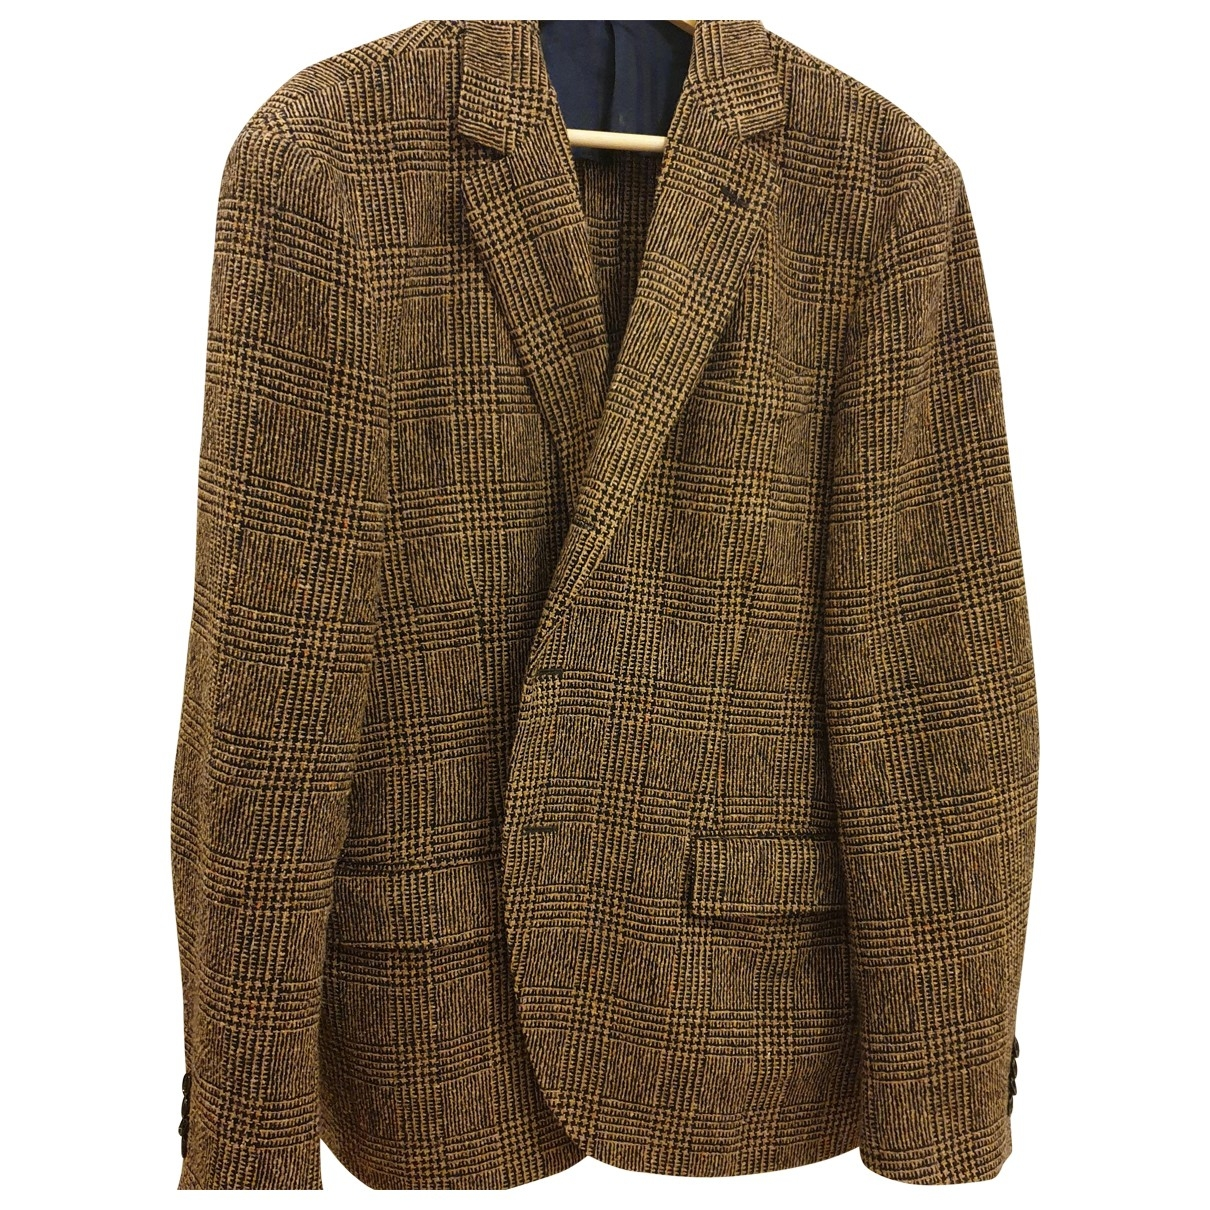 Massimo Piombo \N Brown Wool jacket  for Men 56 IT